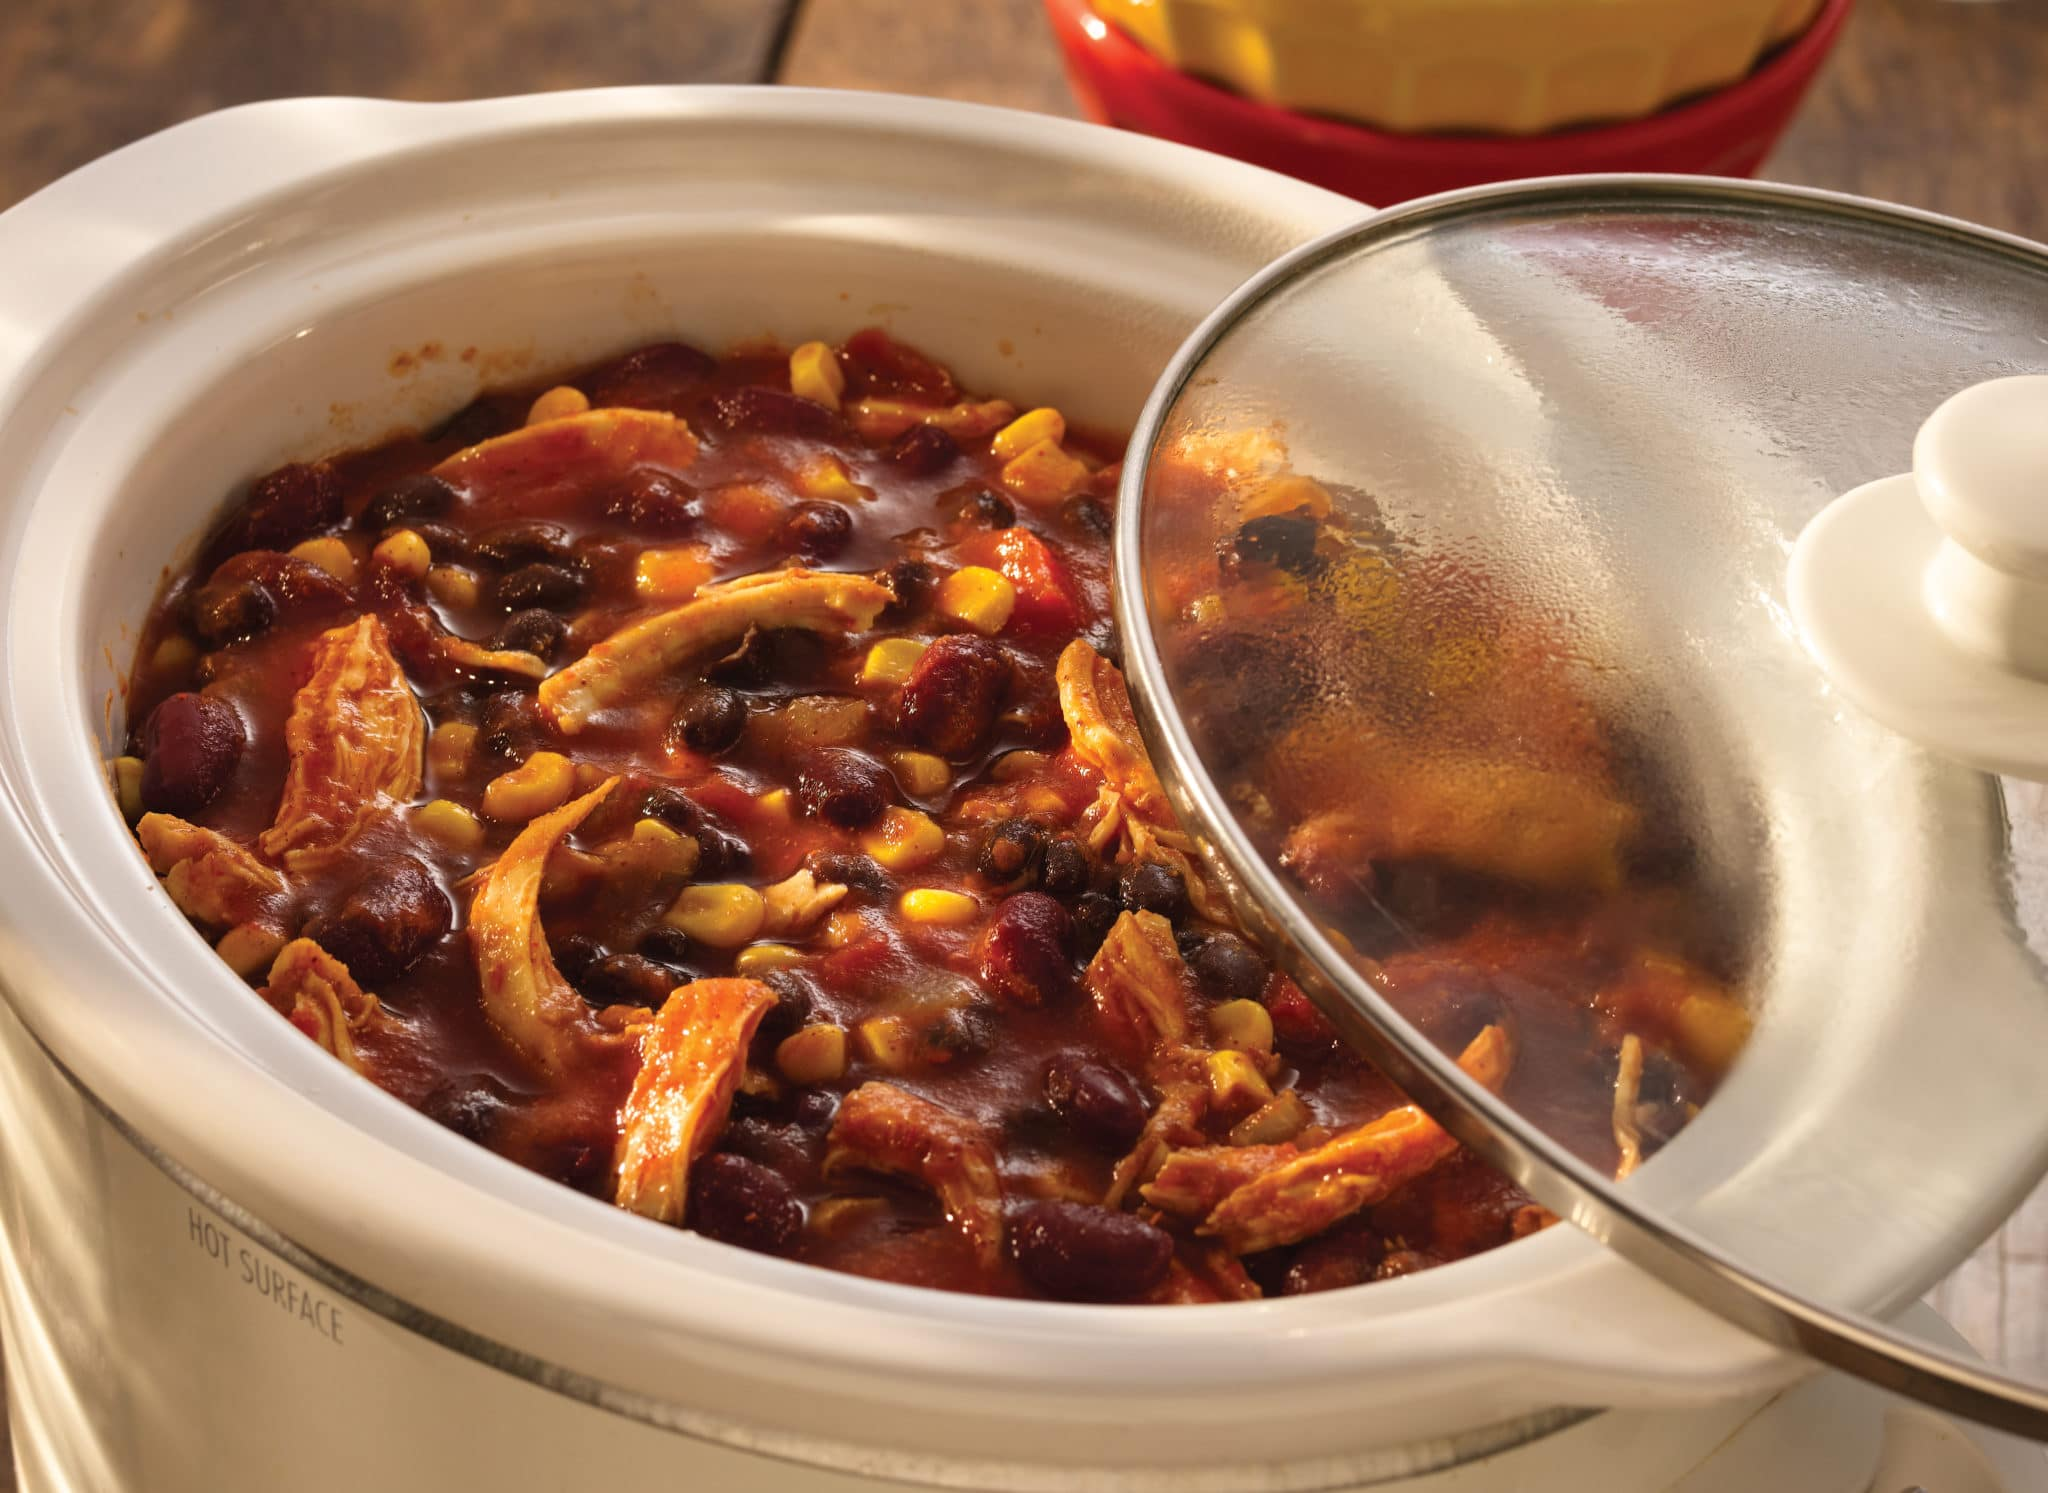 Slow Cooker Chicken Taco Chili (click for full resolution)